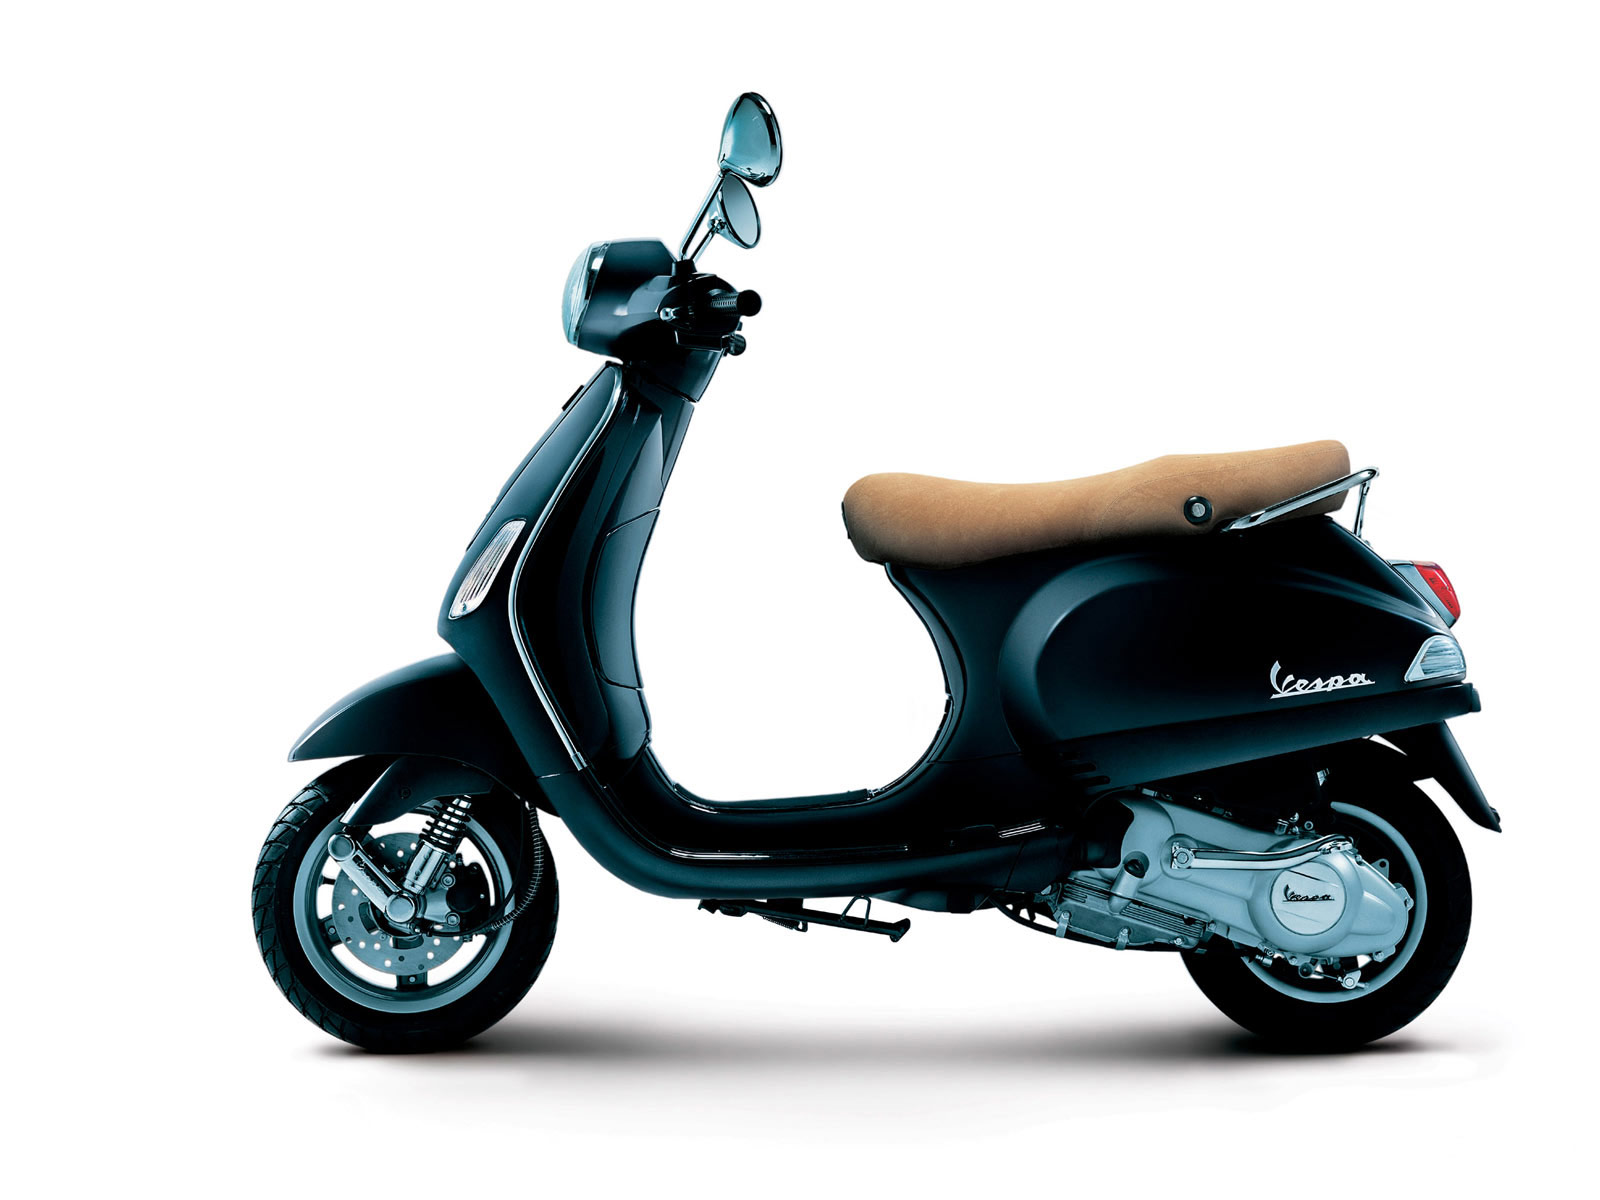 vespa lx125 insurance info 2007 scooter pictures. Black Bedroom Furniture Sets. Home Design Ideas